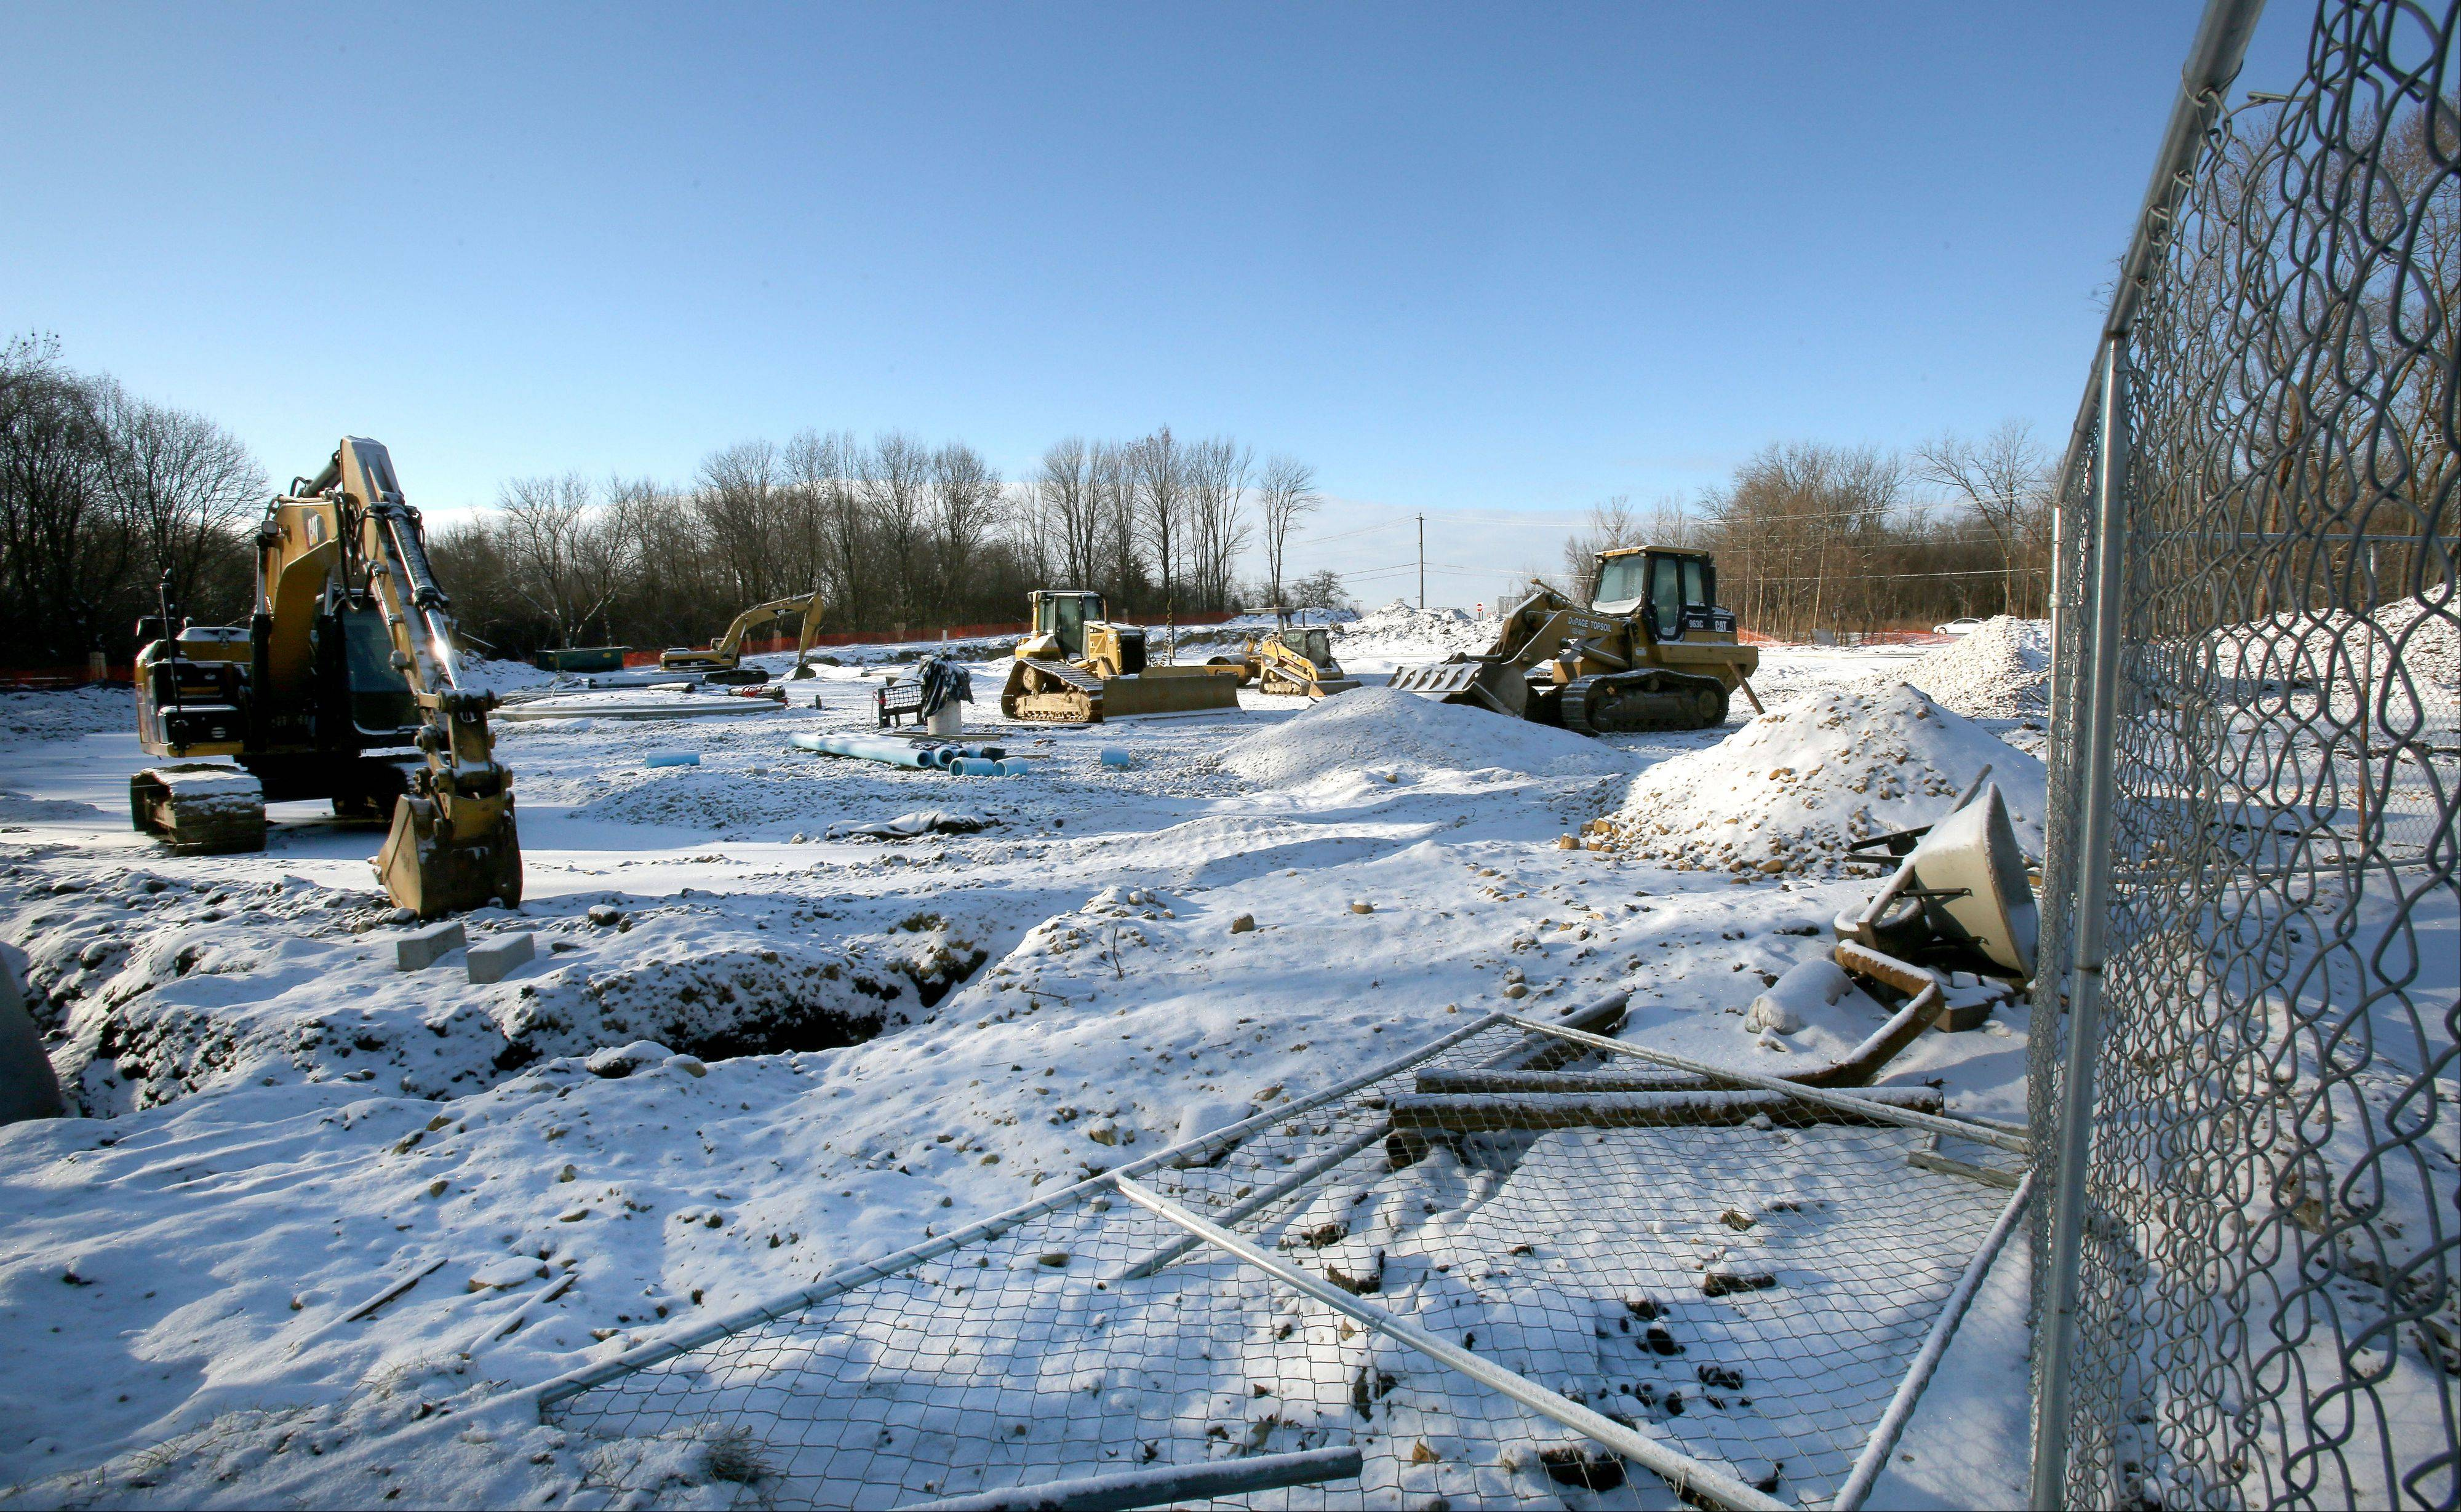 Work has begun to construct a larger parking lot at Willowbrook Wildlife Center in Glen Ellyn. The nearly $1.7 million project is expected to be completed in the spring.